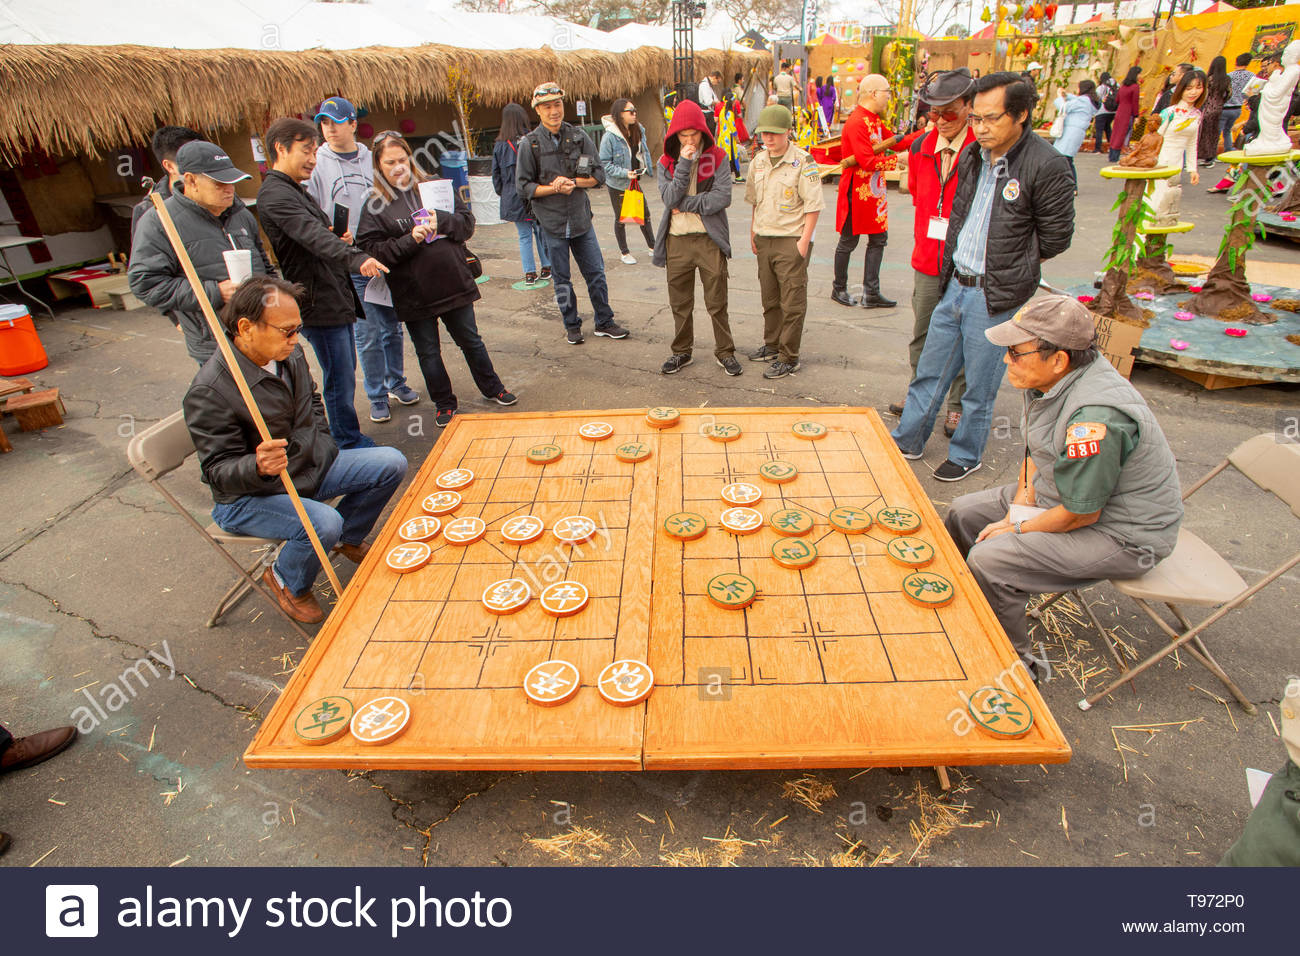 Vietnamese American men play a giant-size chess game at a Tet Lunar New Year festival in Costa Nesa, CA, as Boy Scouts watch. - Stock Image